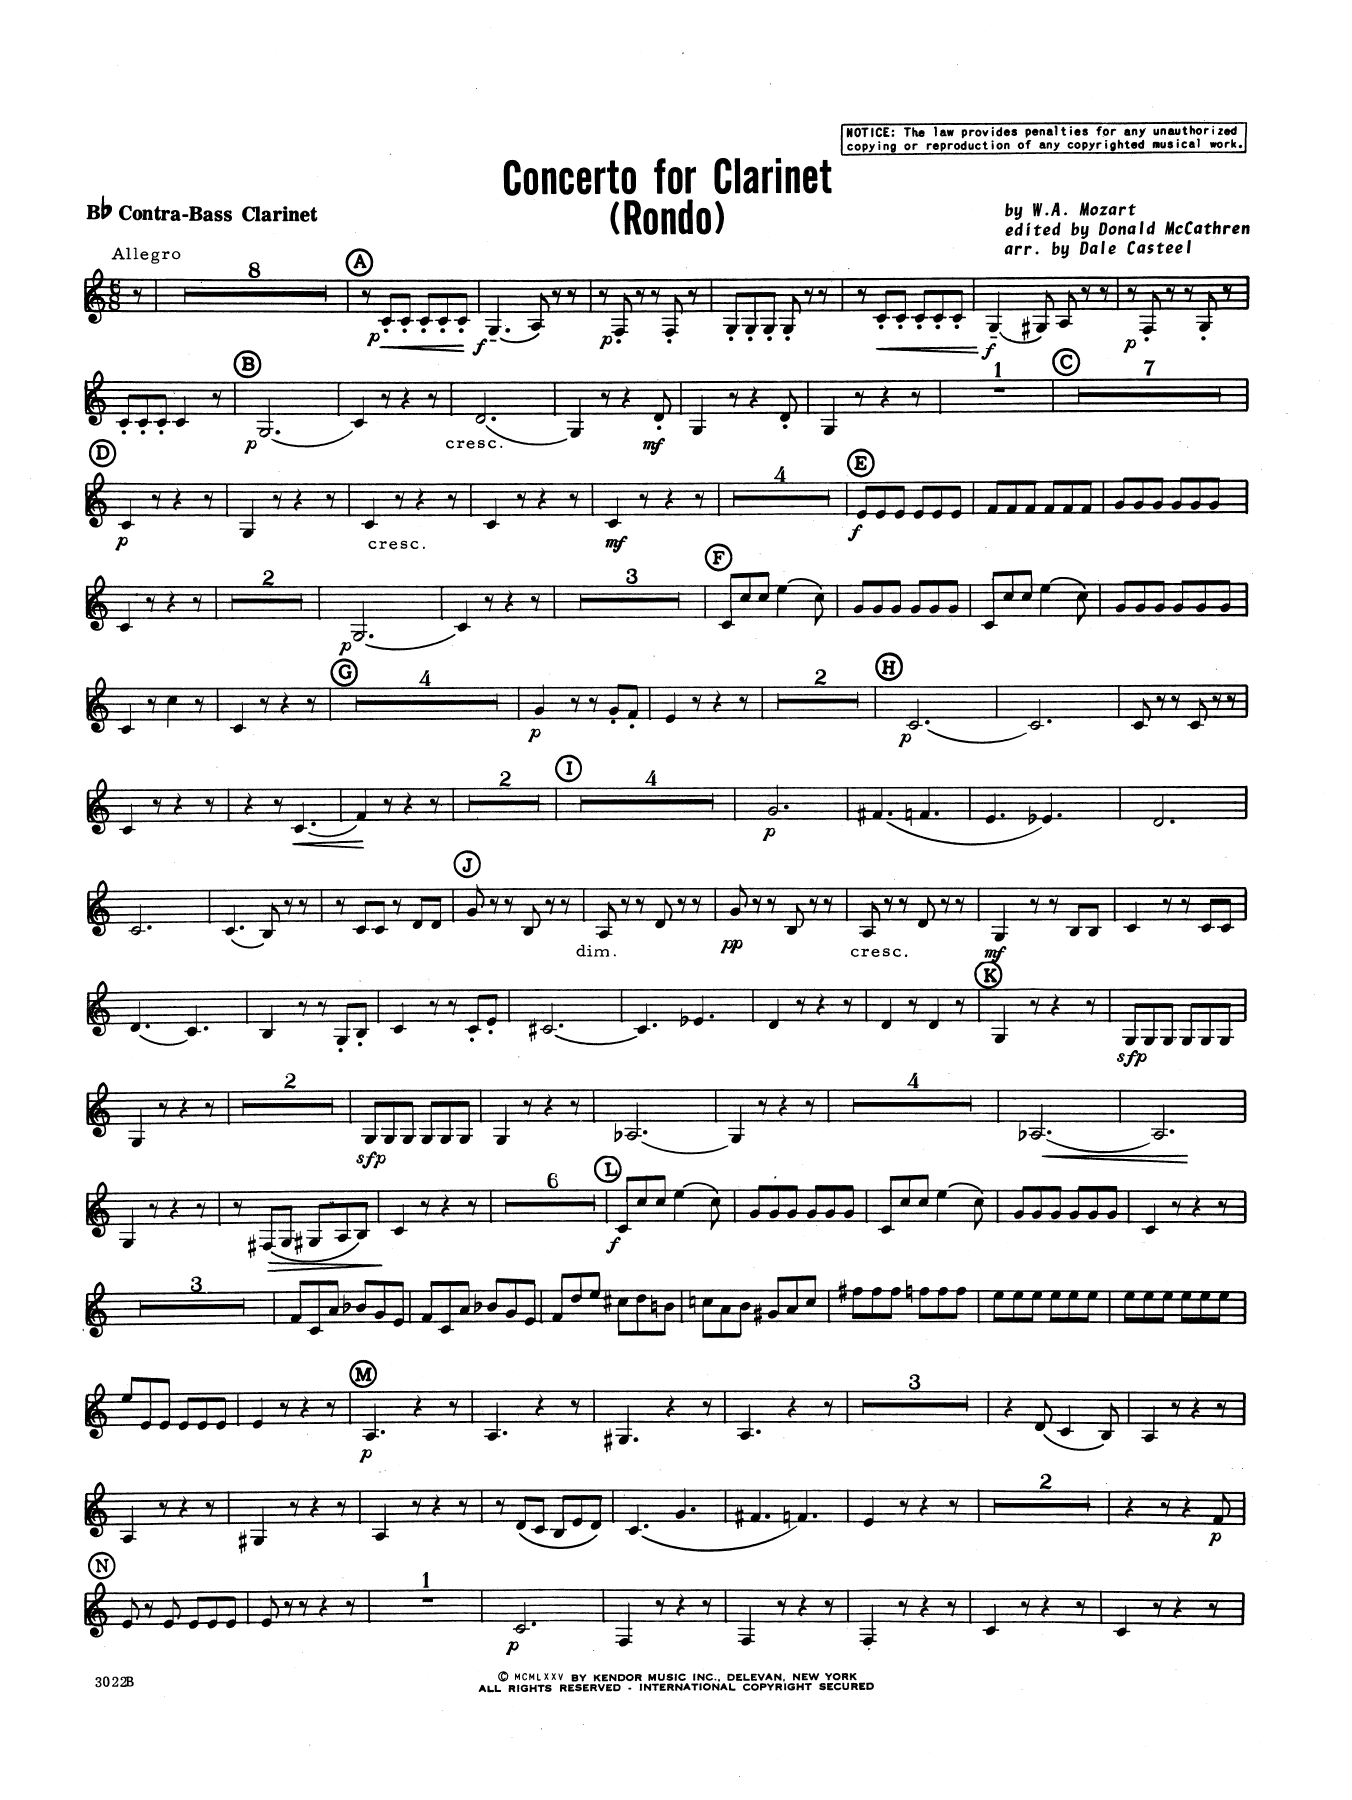 Donald McCathren and Dale Casteel Concerto For Clarinet - Rondo (3rd Movement) - K.622 - Bb Contra Bass Clarinet sheet music notes printable PDF score